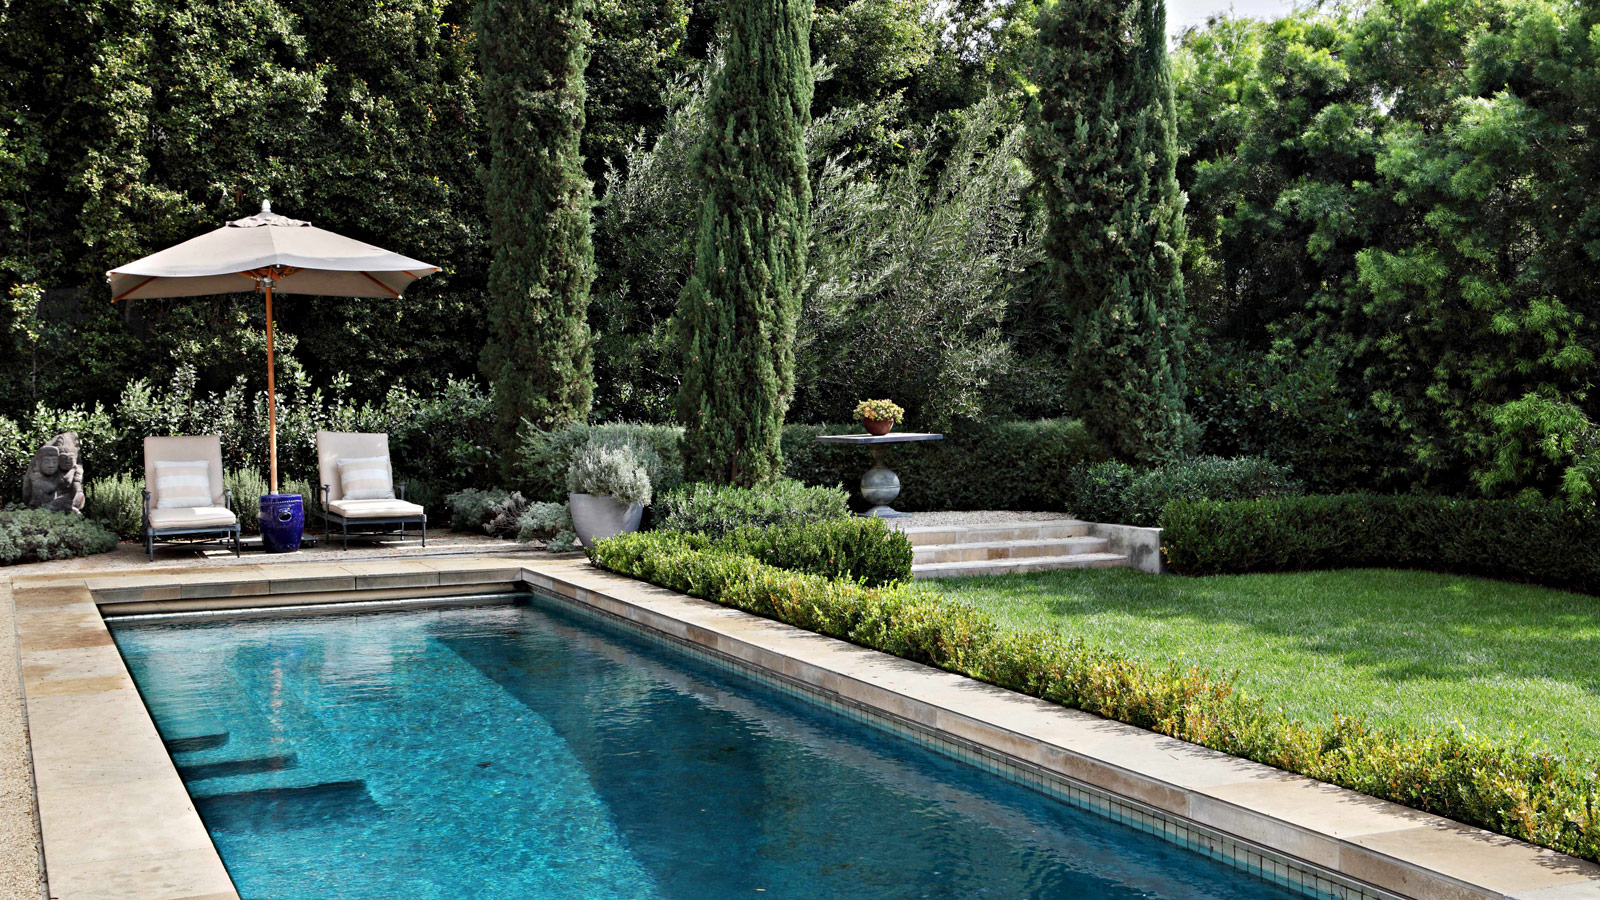 Enchanting pool and backyard gardens at William Hefner's LA home with Provence style. #pool #backyard #Provencestyle #Frenchinspired #garden